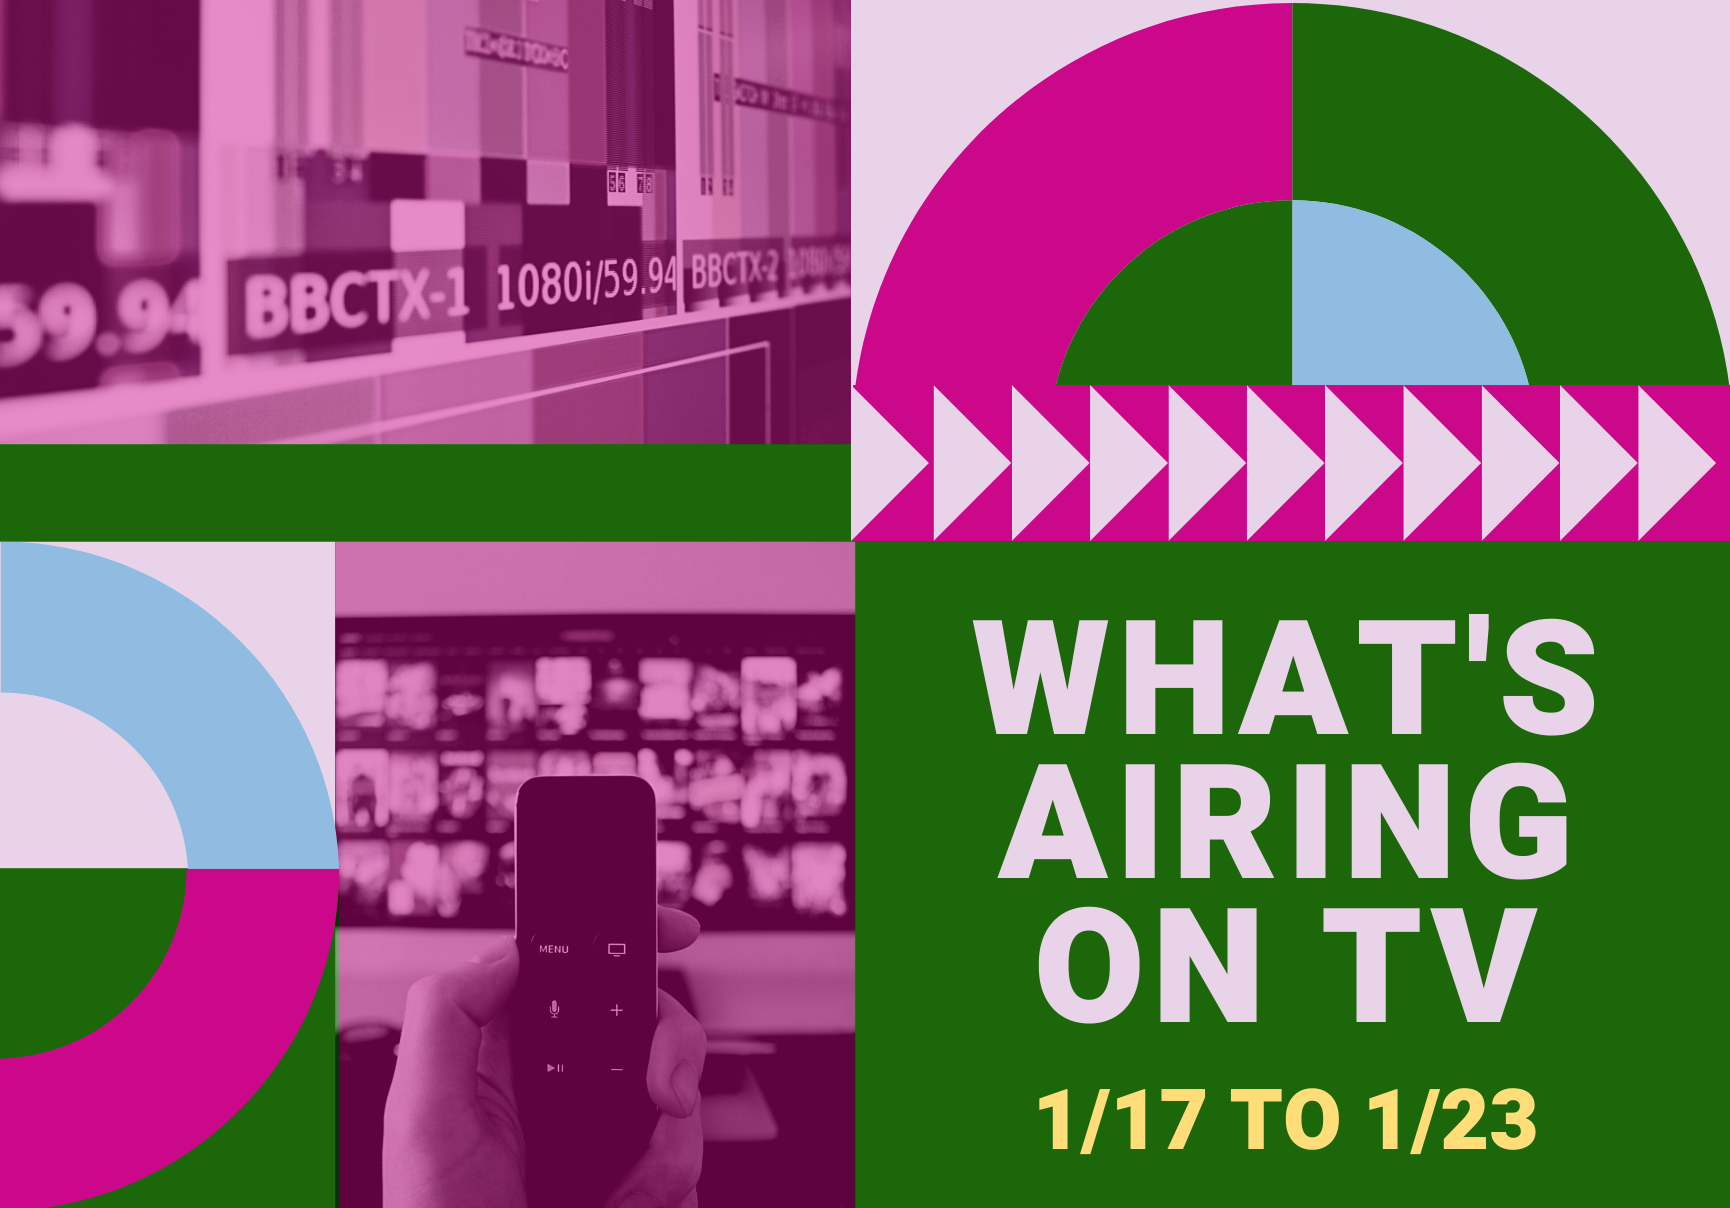 What's Airing This Week on TV - 1/17 to 1/23